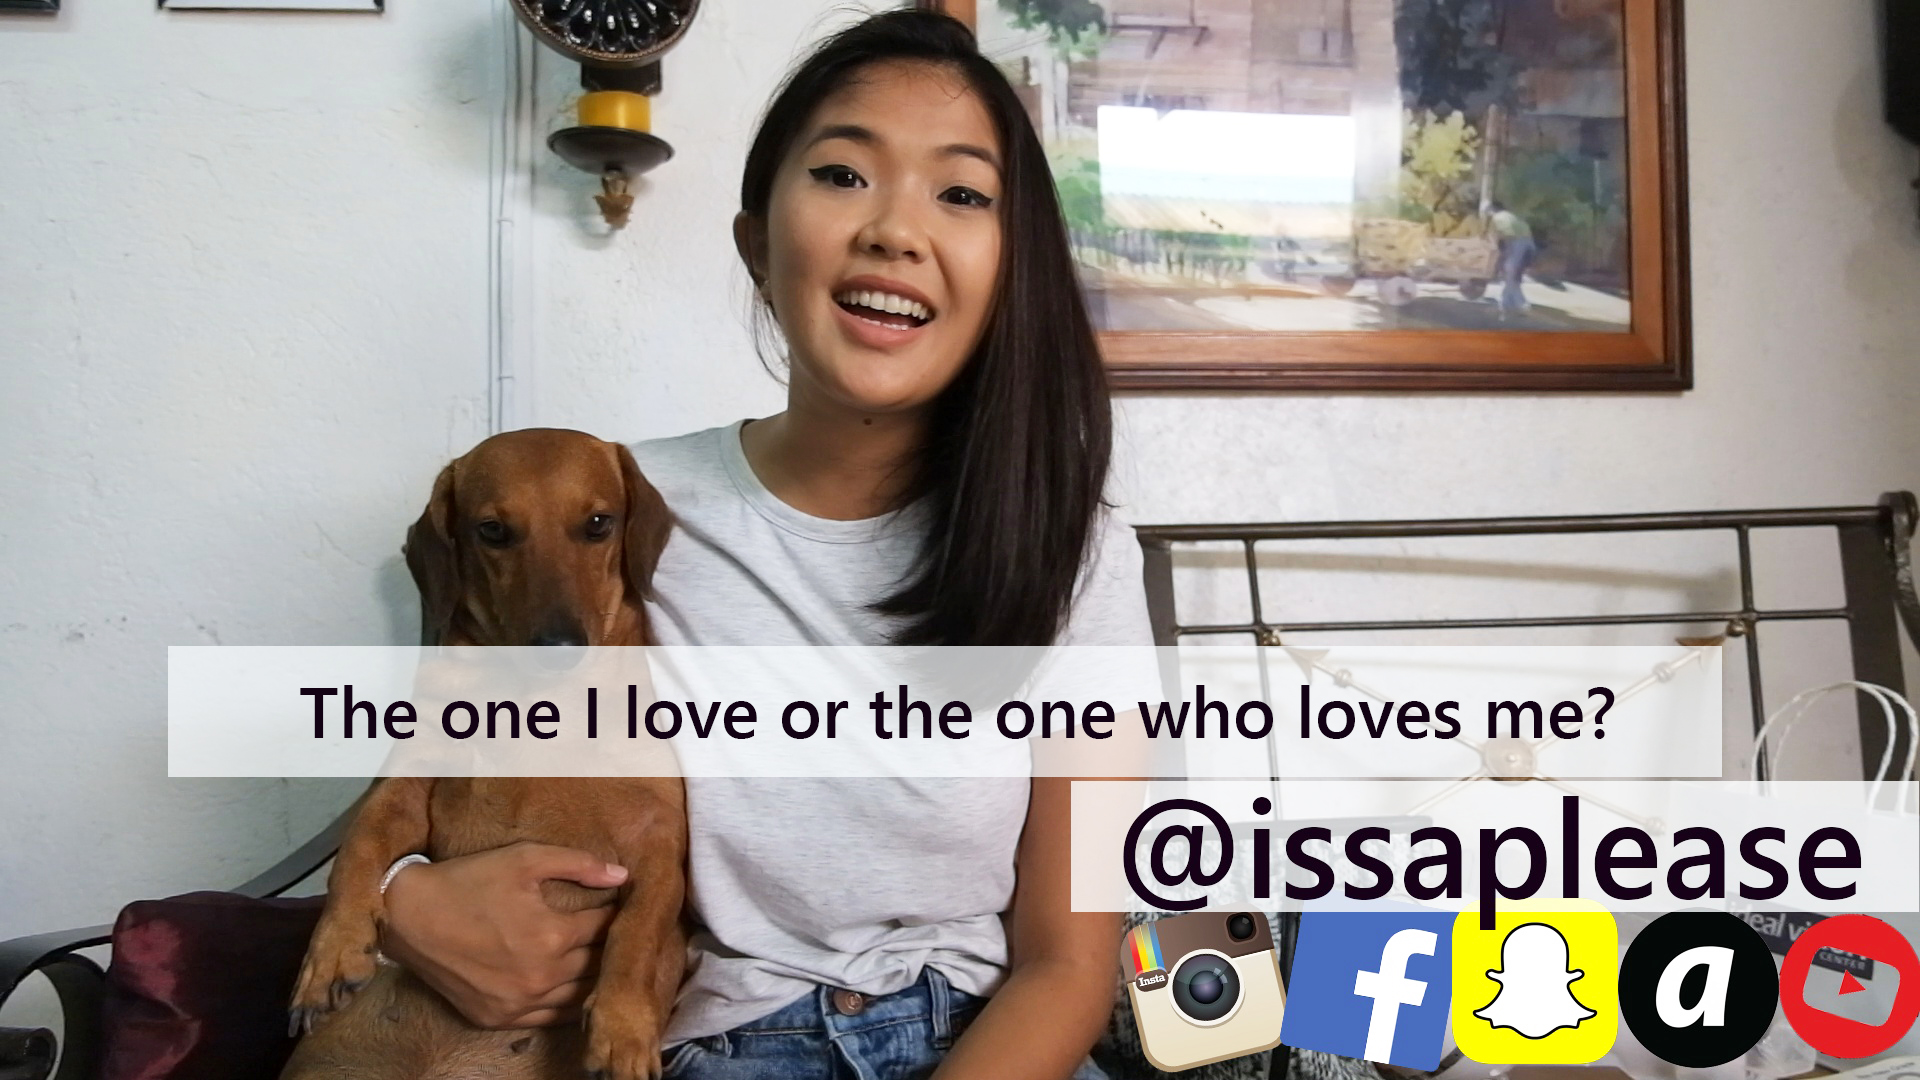 [Vlog] Serious Sundays: The One I Love or The One Who Loves Me?